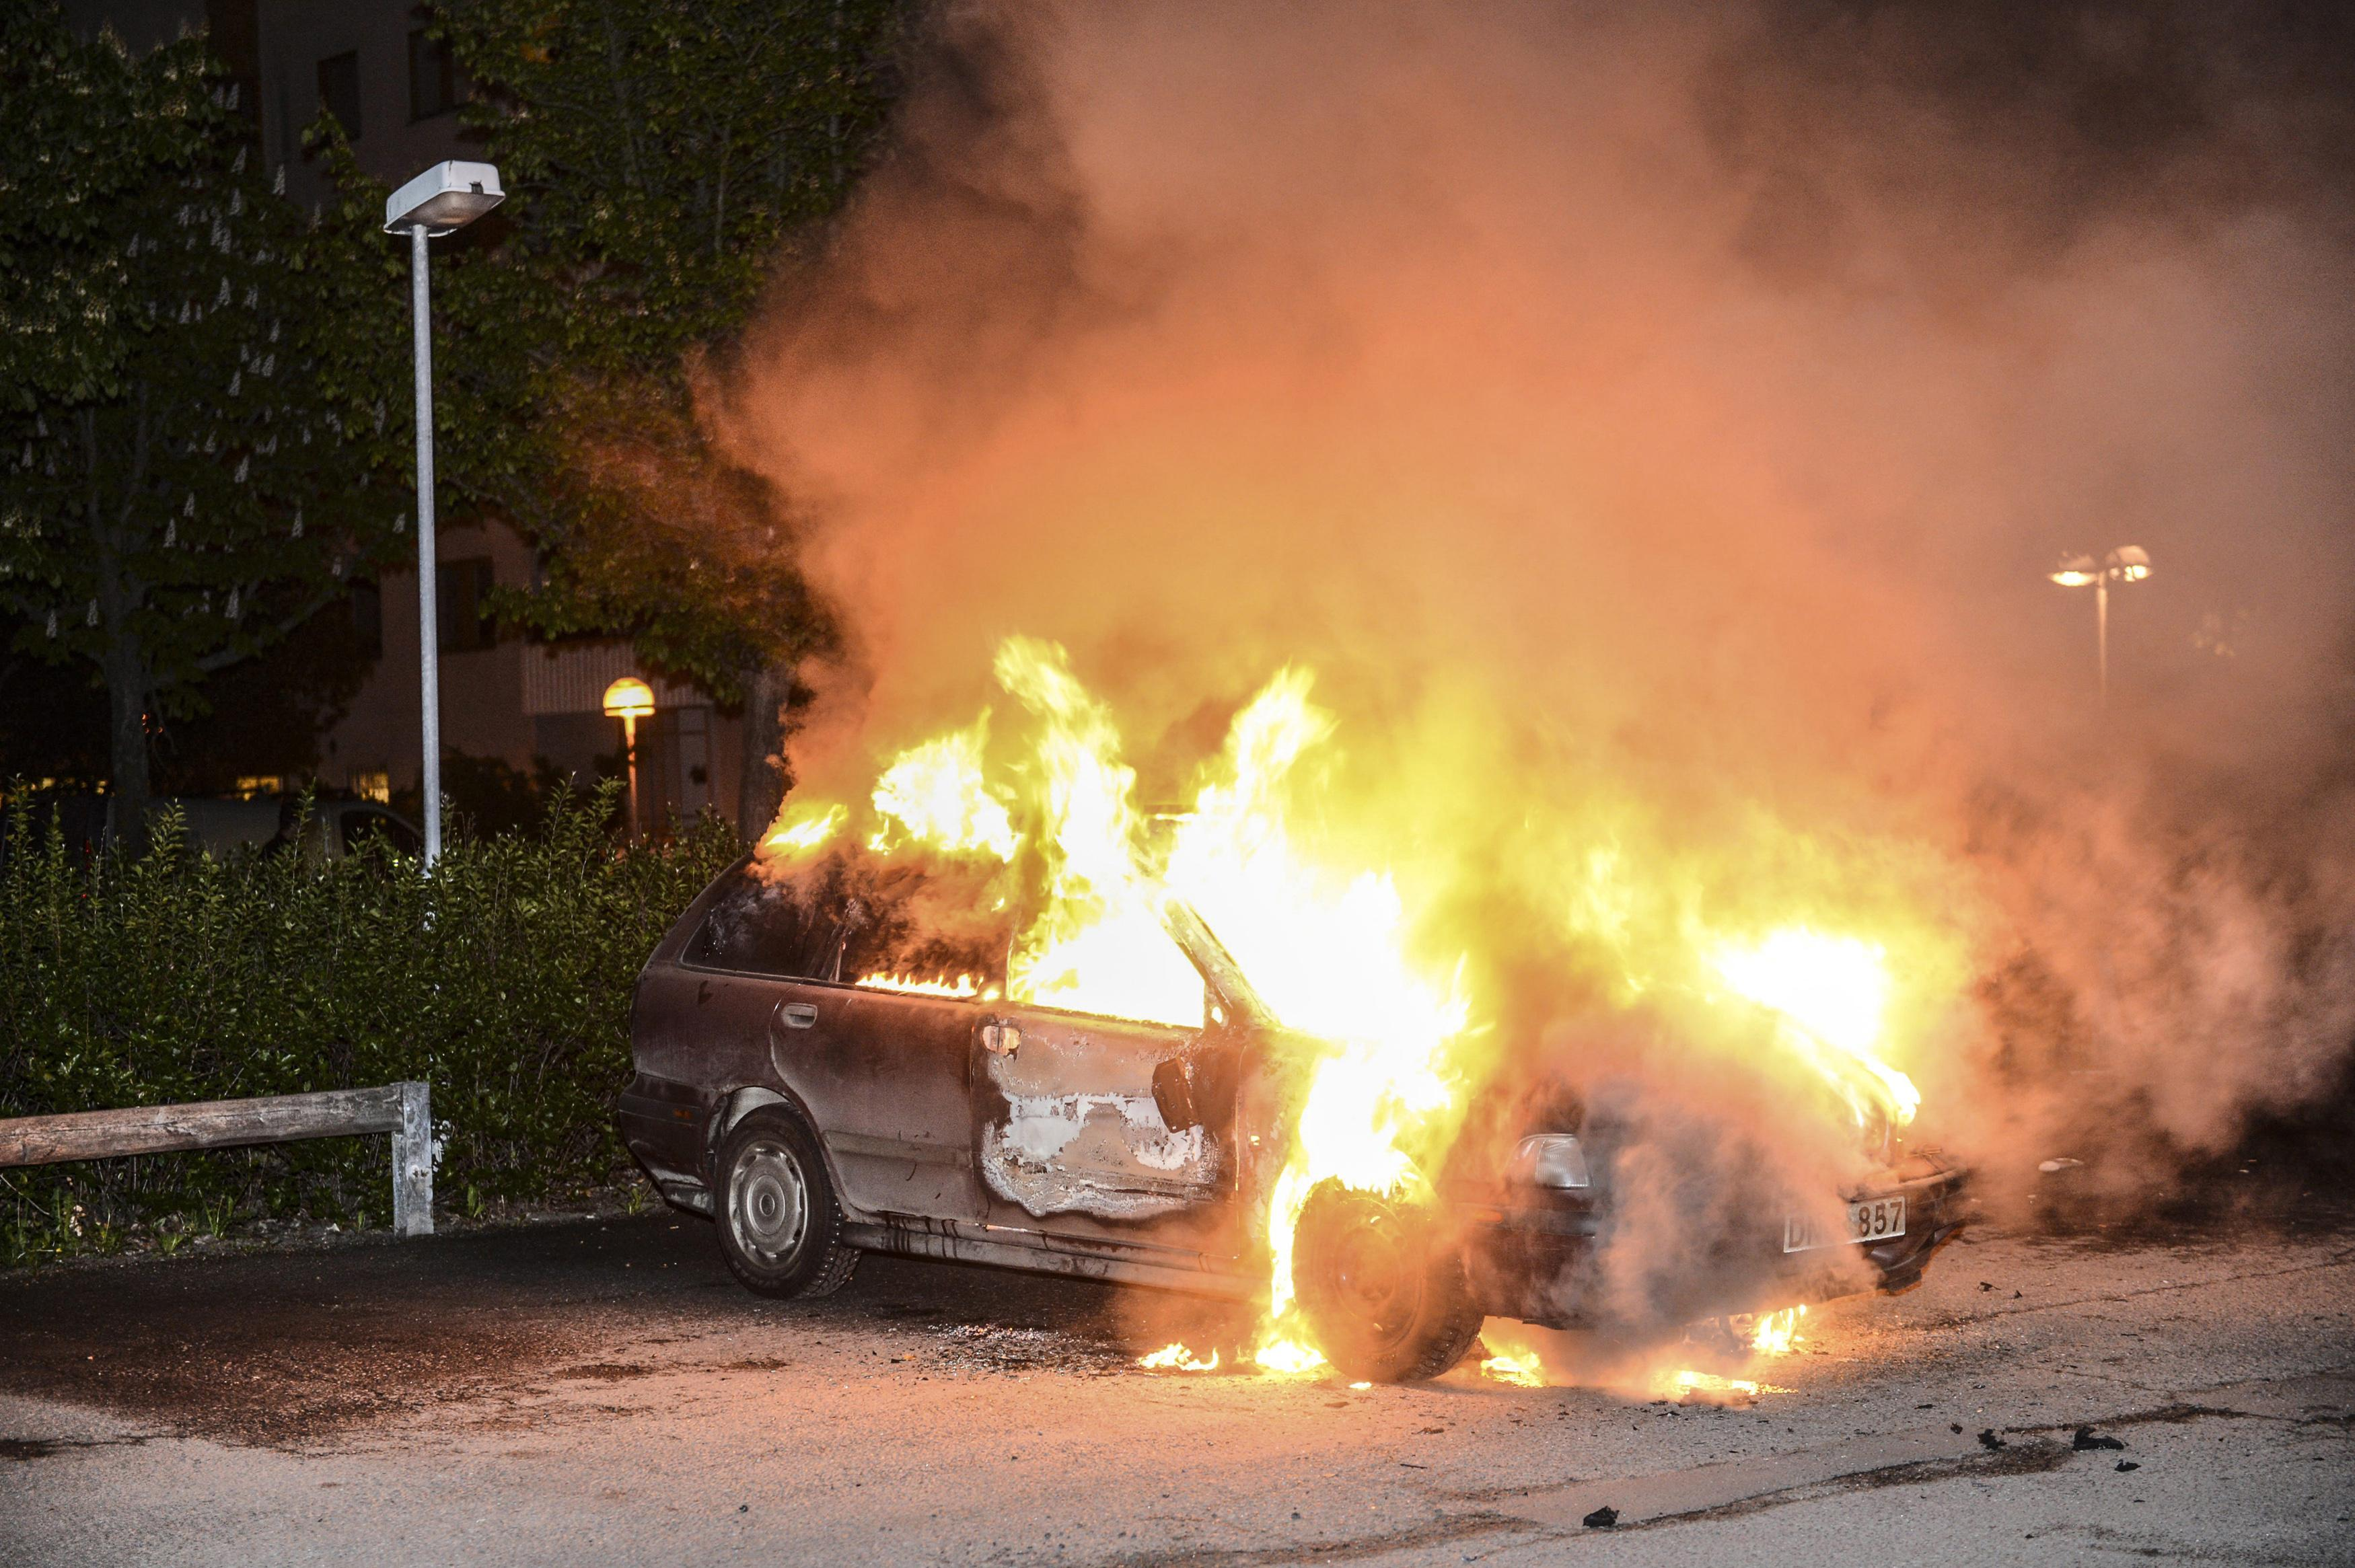 Car on fire in Sweden